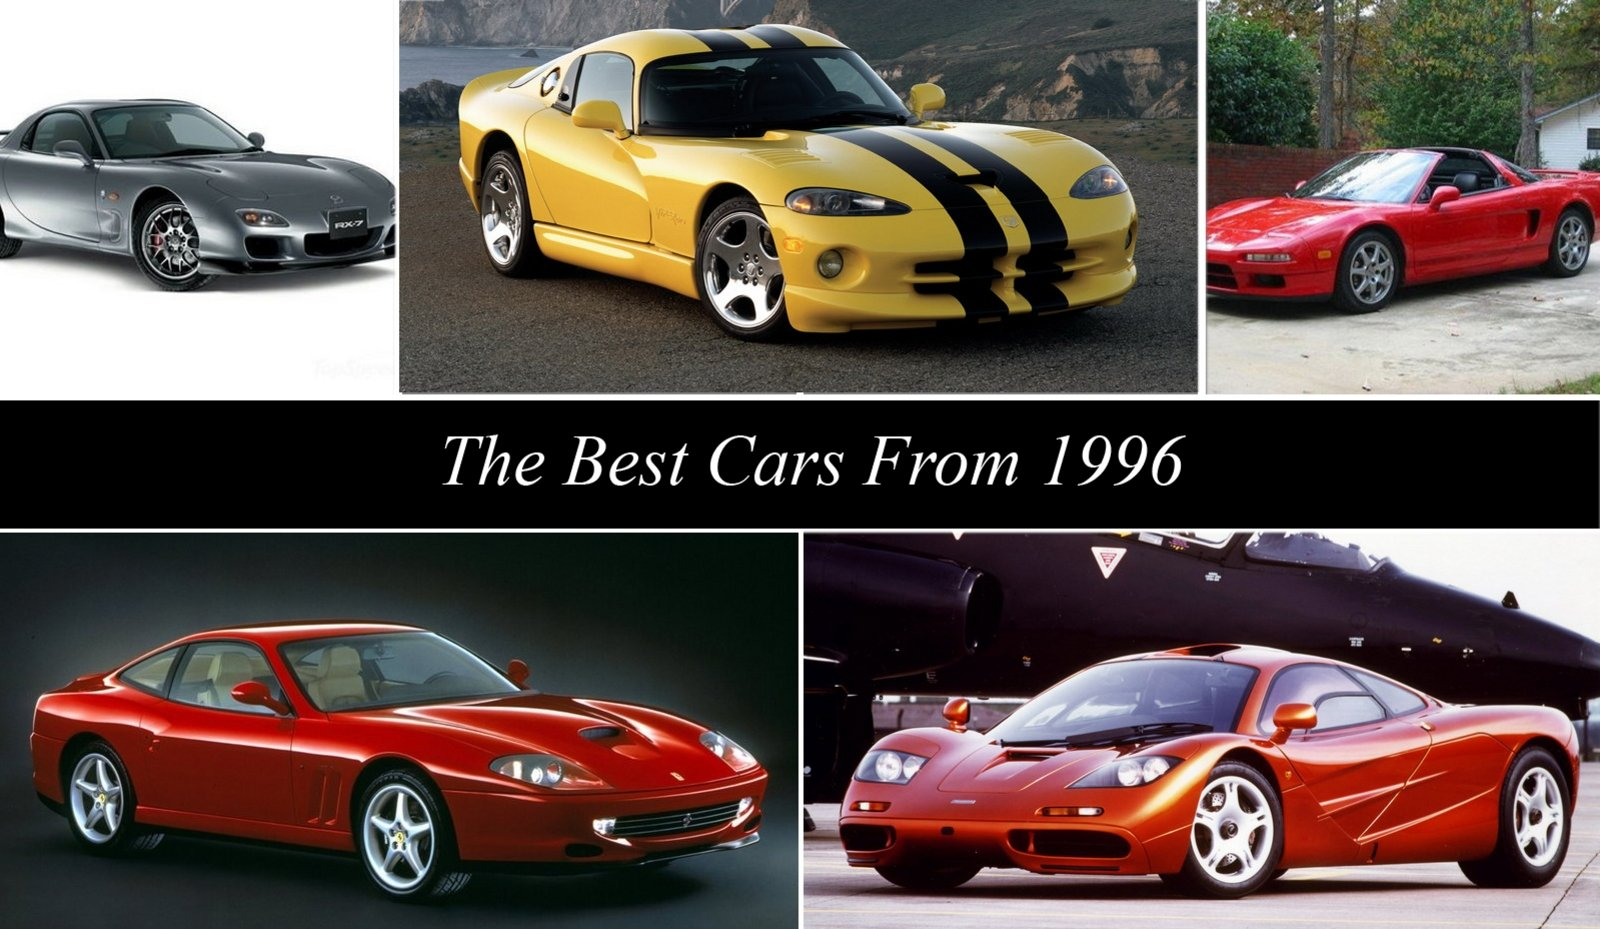 The Best Cars From 1996 Guide - Top Speed